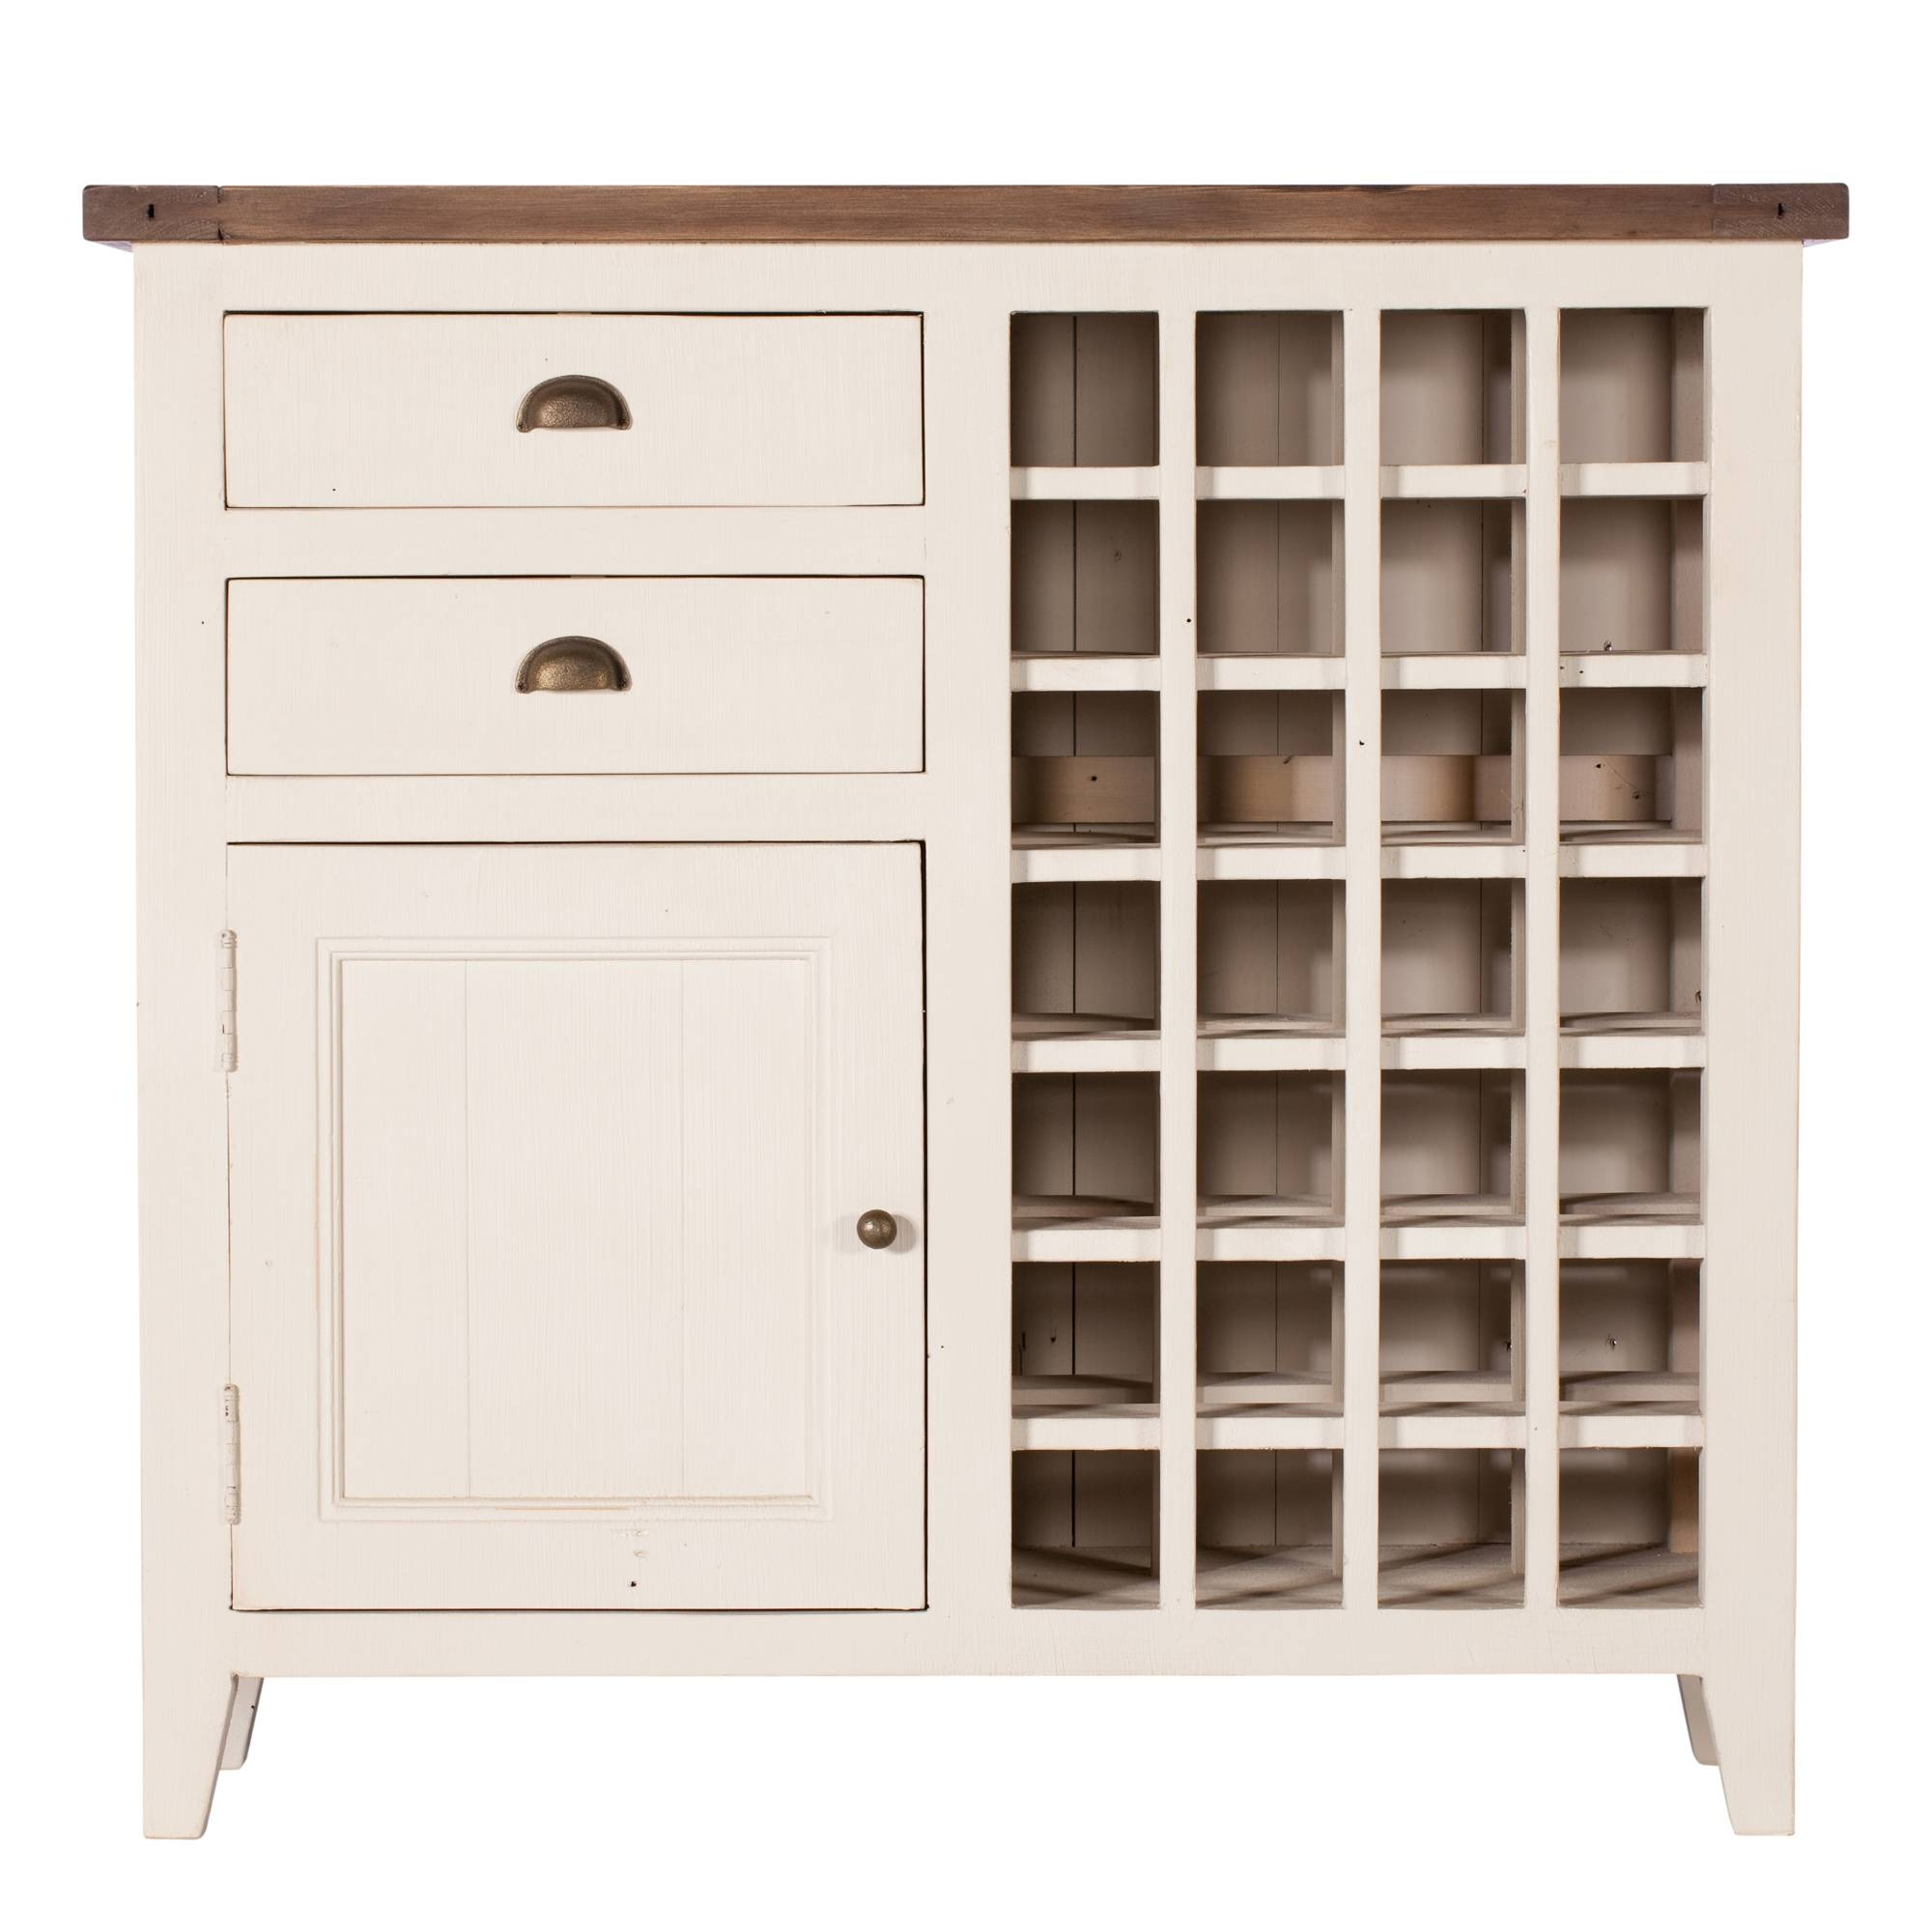 Aldeburgh Wine Rack Sideboard | No 44 Furniture, Cobham Nr London Intended For Newest Sideboards With Wine Rack (#1 of 15)